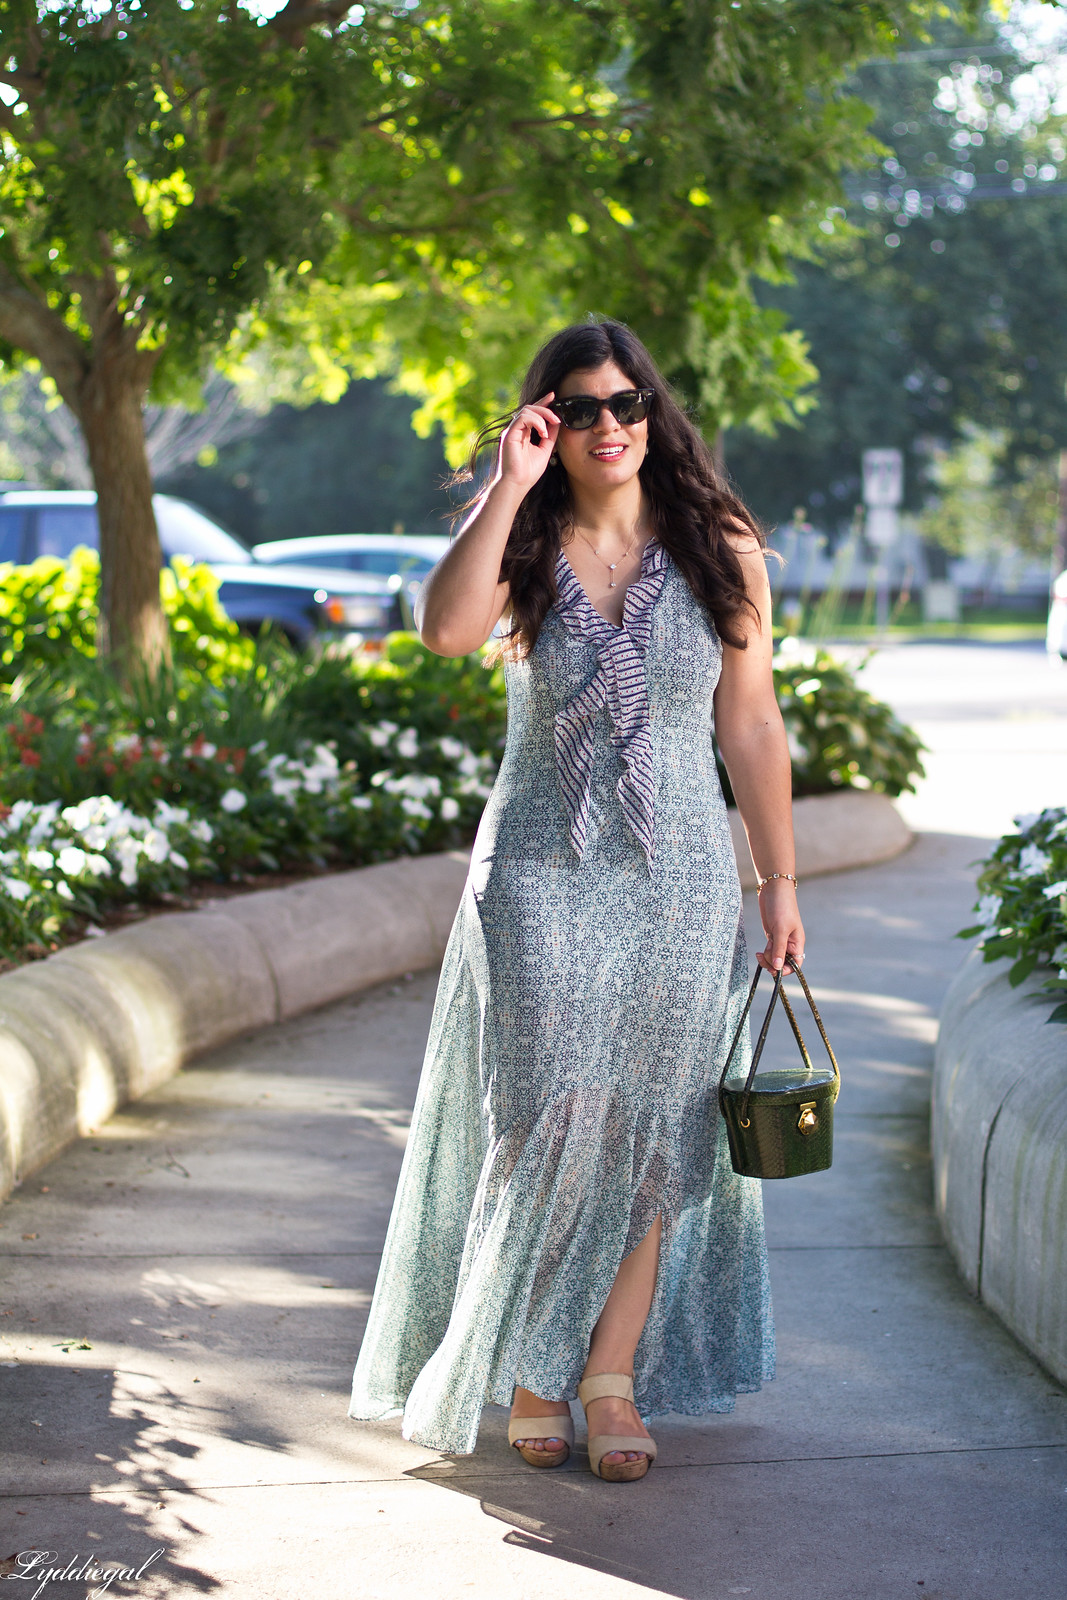 floral print maxi dress, green snakeskin box bag.jpg